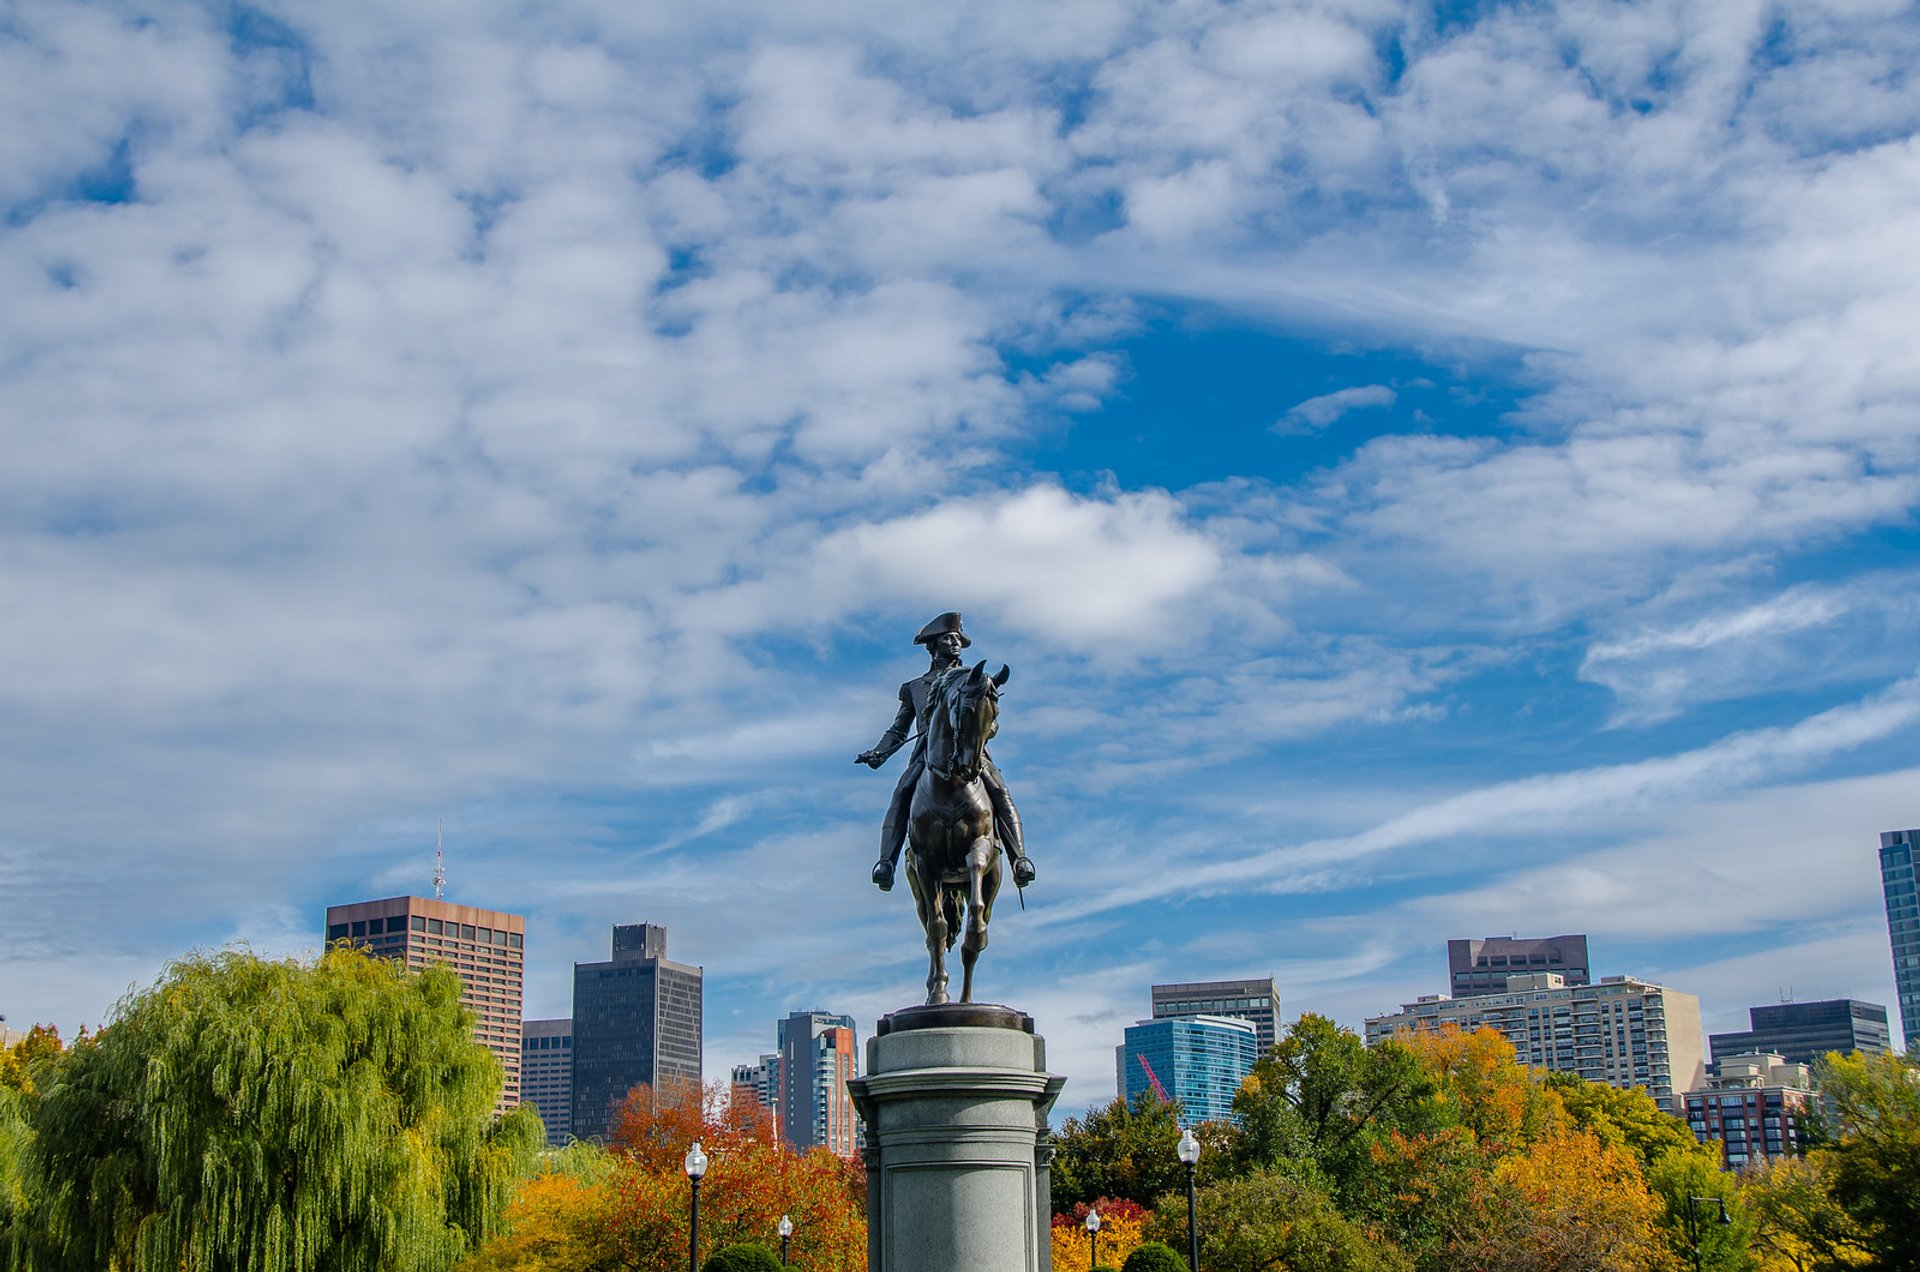 George Washington standing tall on a fall day in the Public Garden, Boston 2020